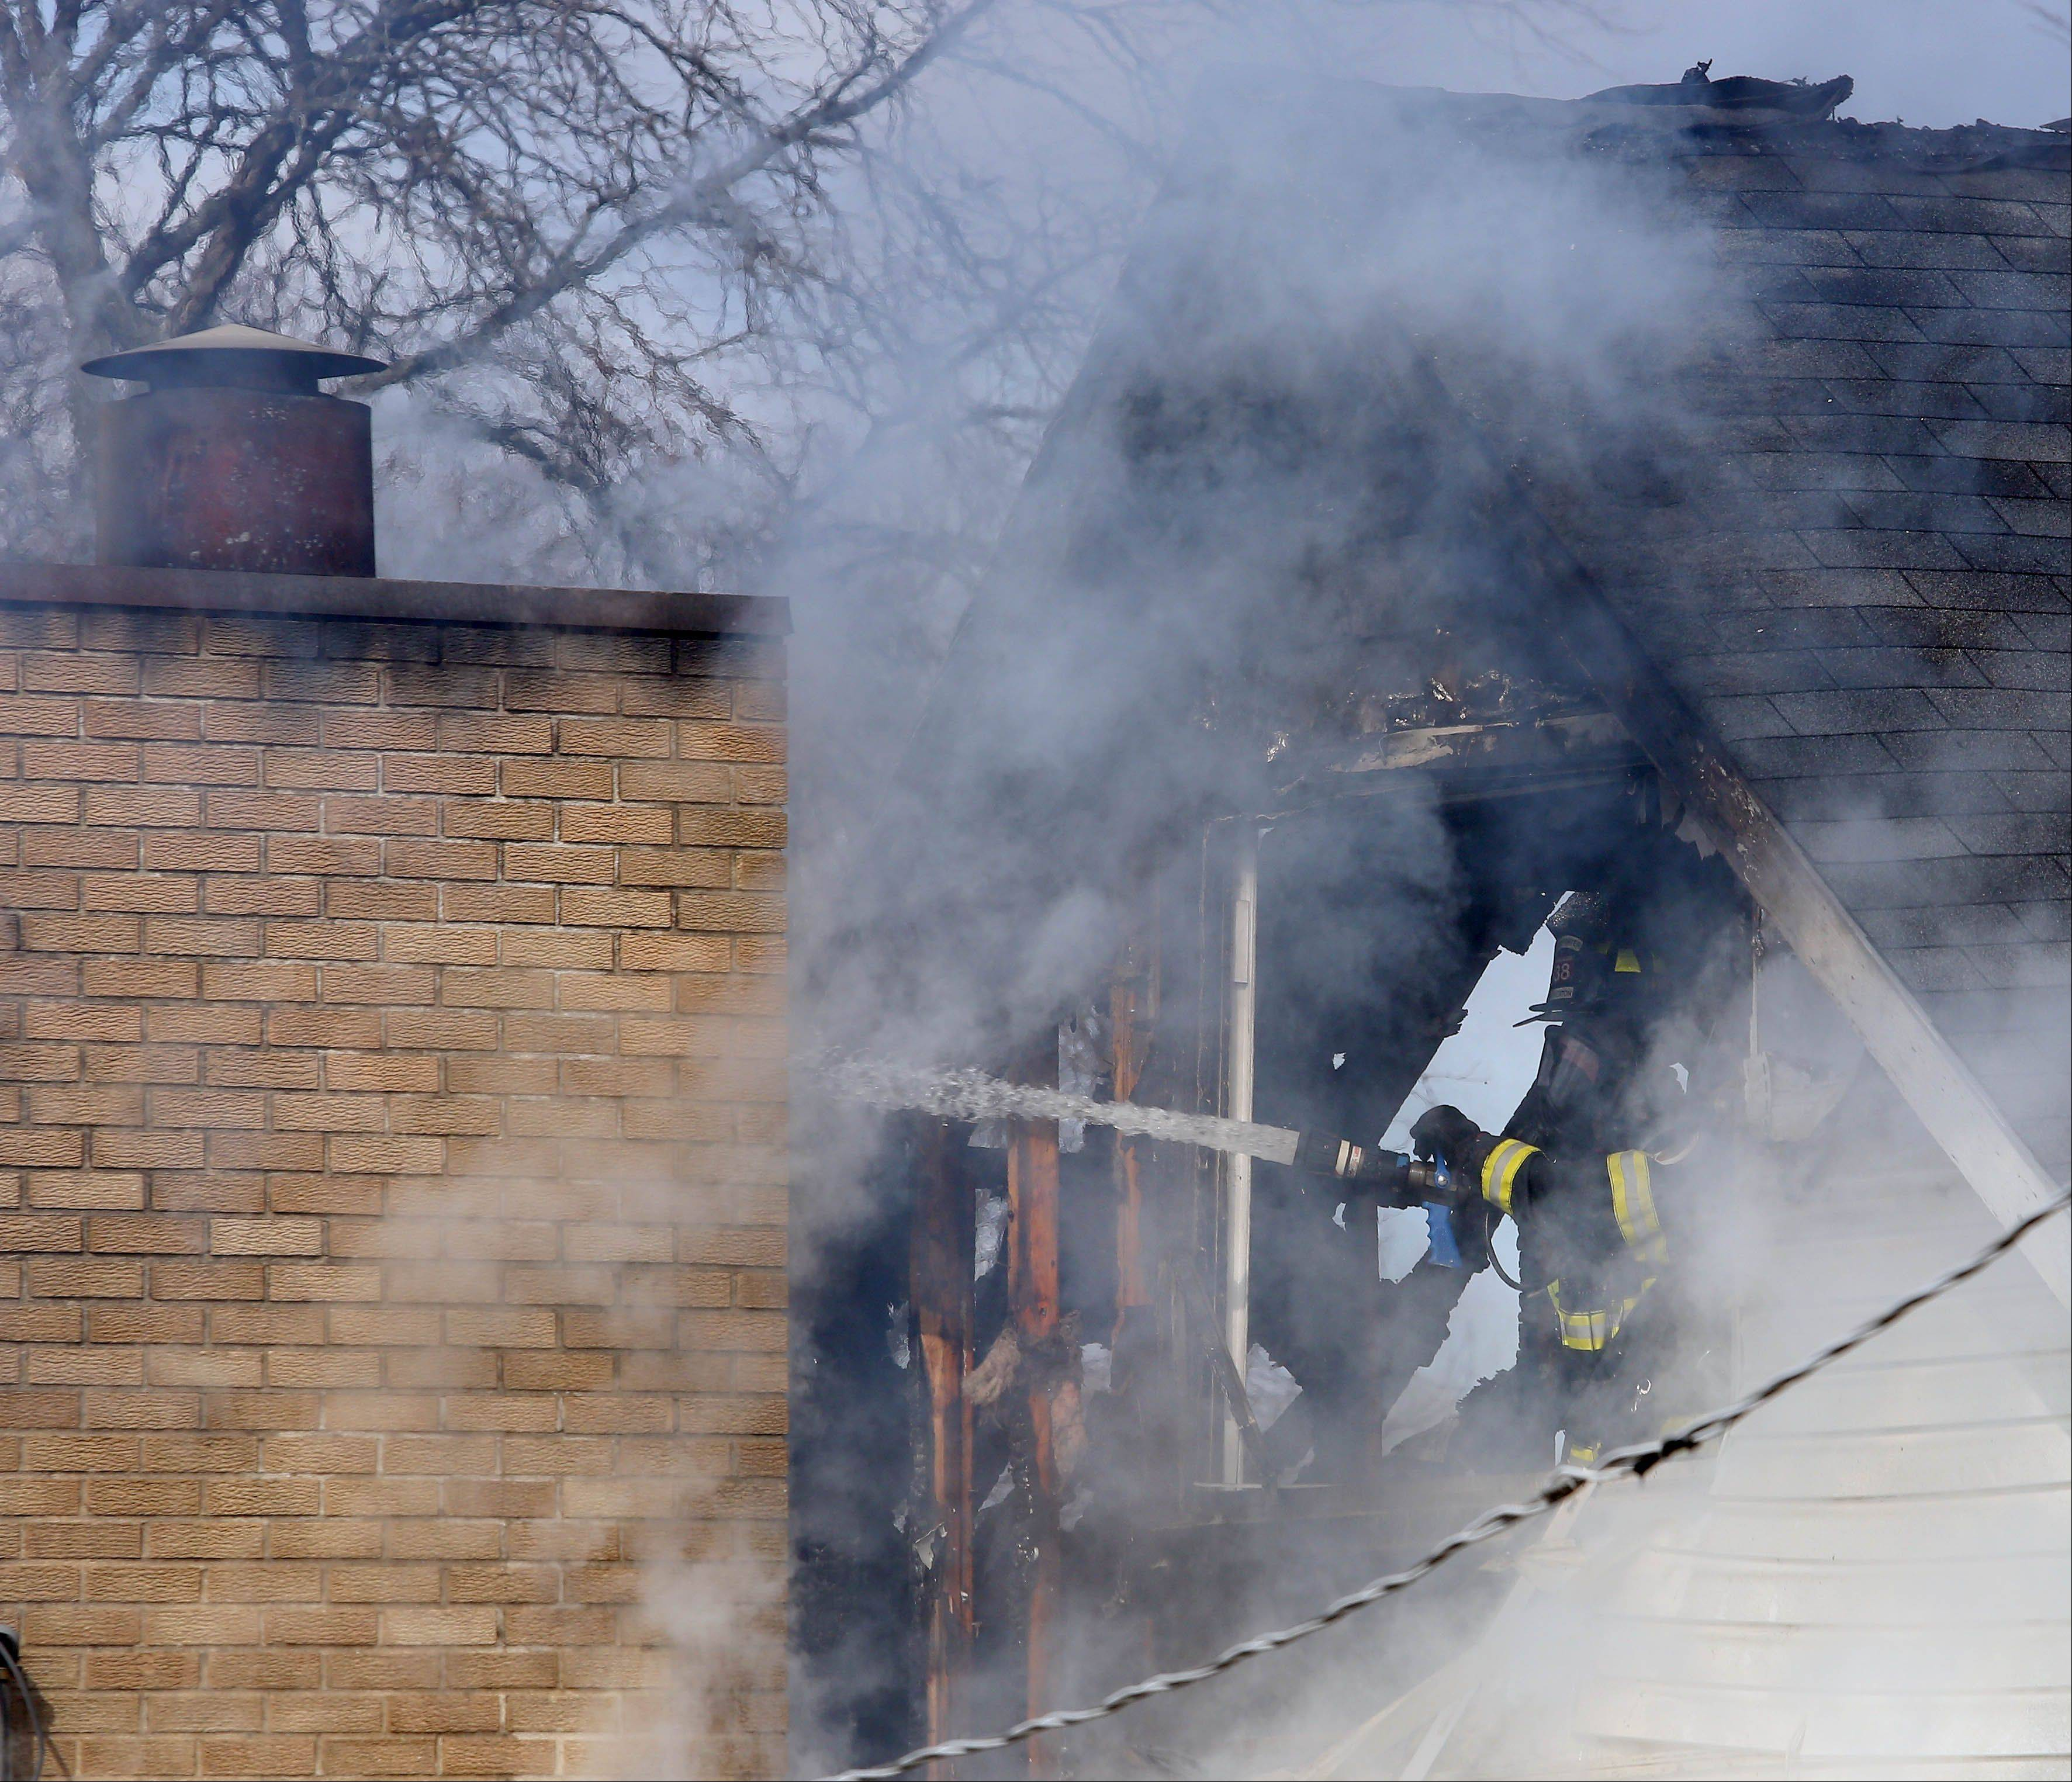 Carol Stream firefighters responded to a house fire shortly before 10 a.m. Wednesday on the 400 block of N. Blackhawk Drive.